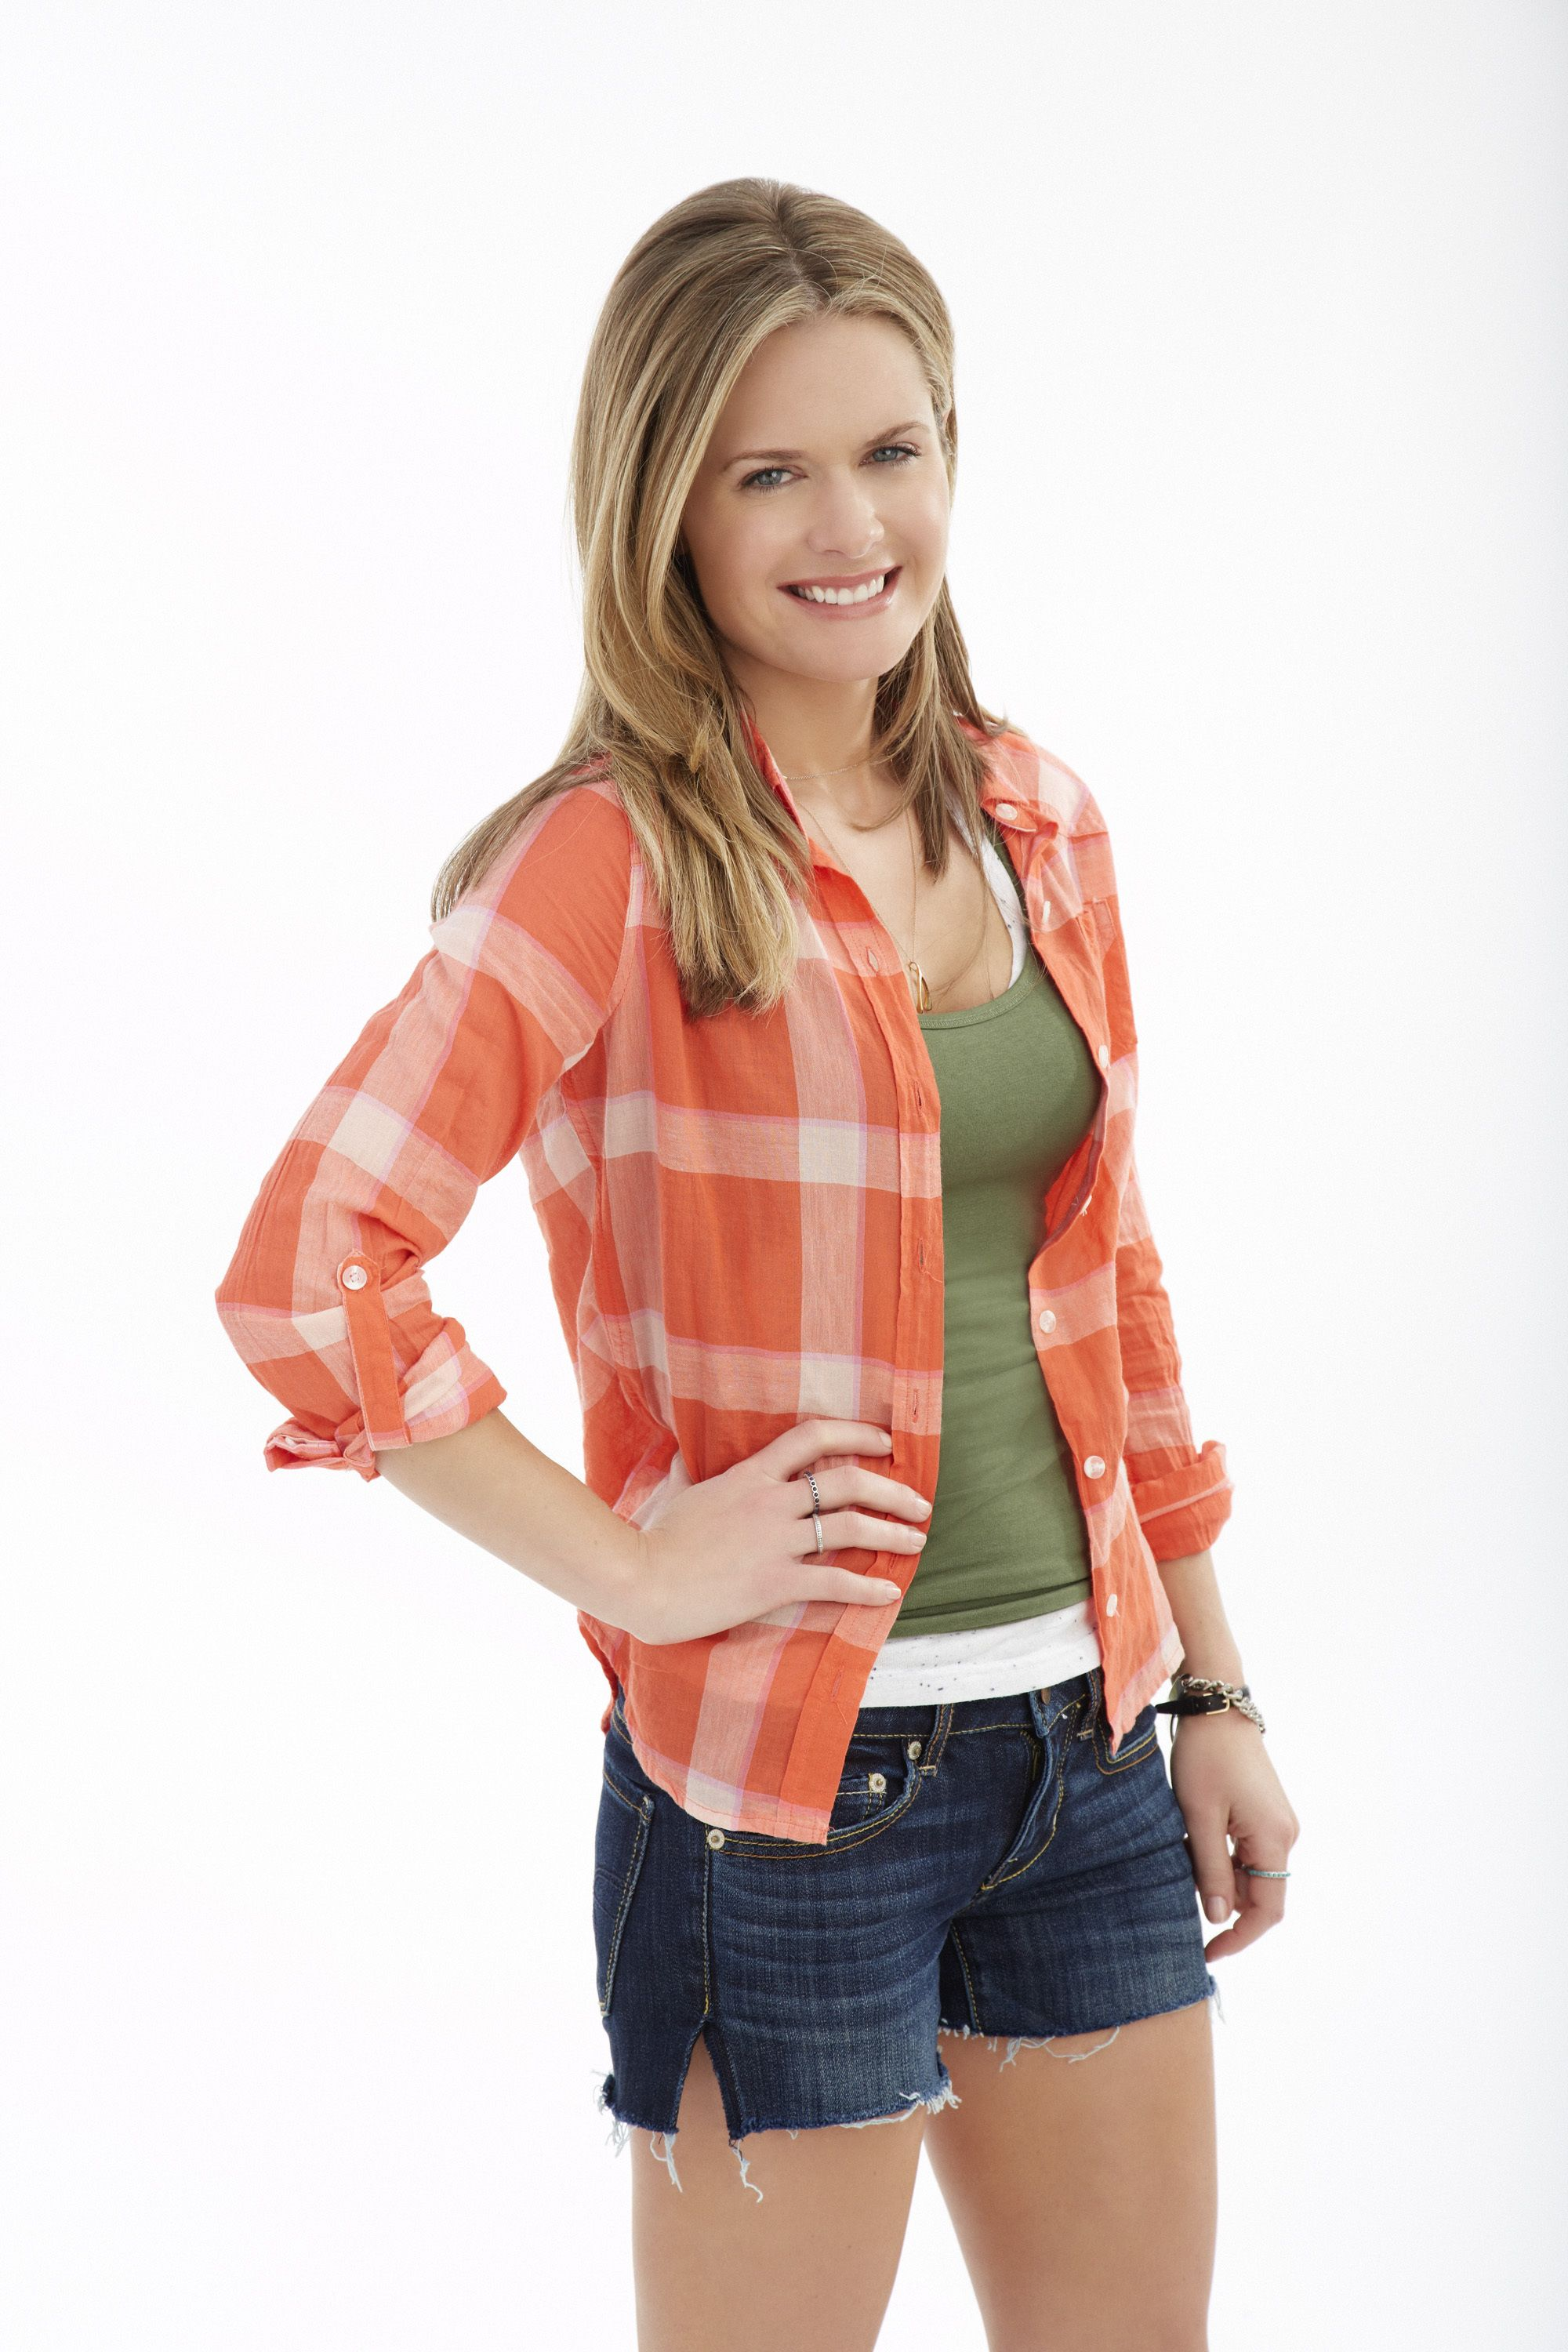 Maggie Lawson Nude Pictures Delightful backinthegame #terrygannonjr. #maggielawson | terry gannon, jr